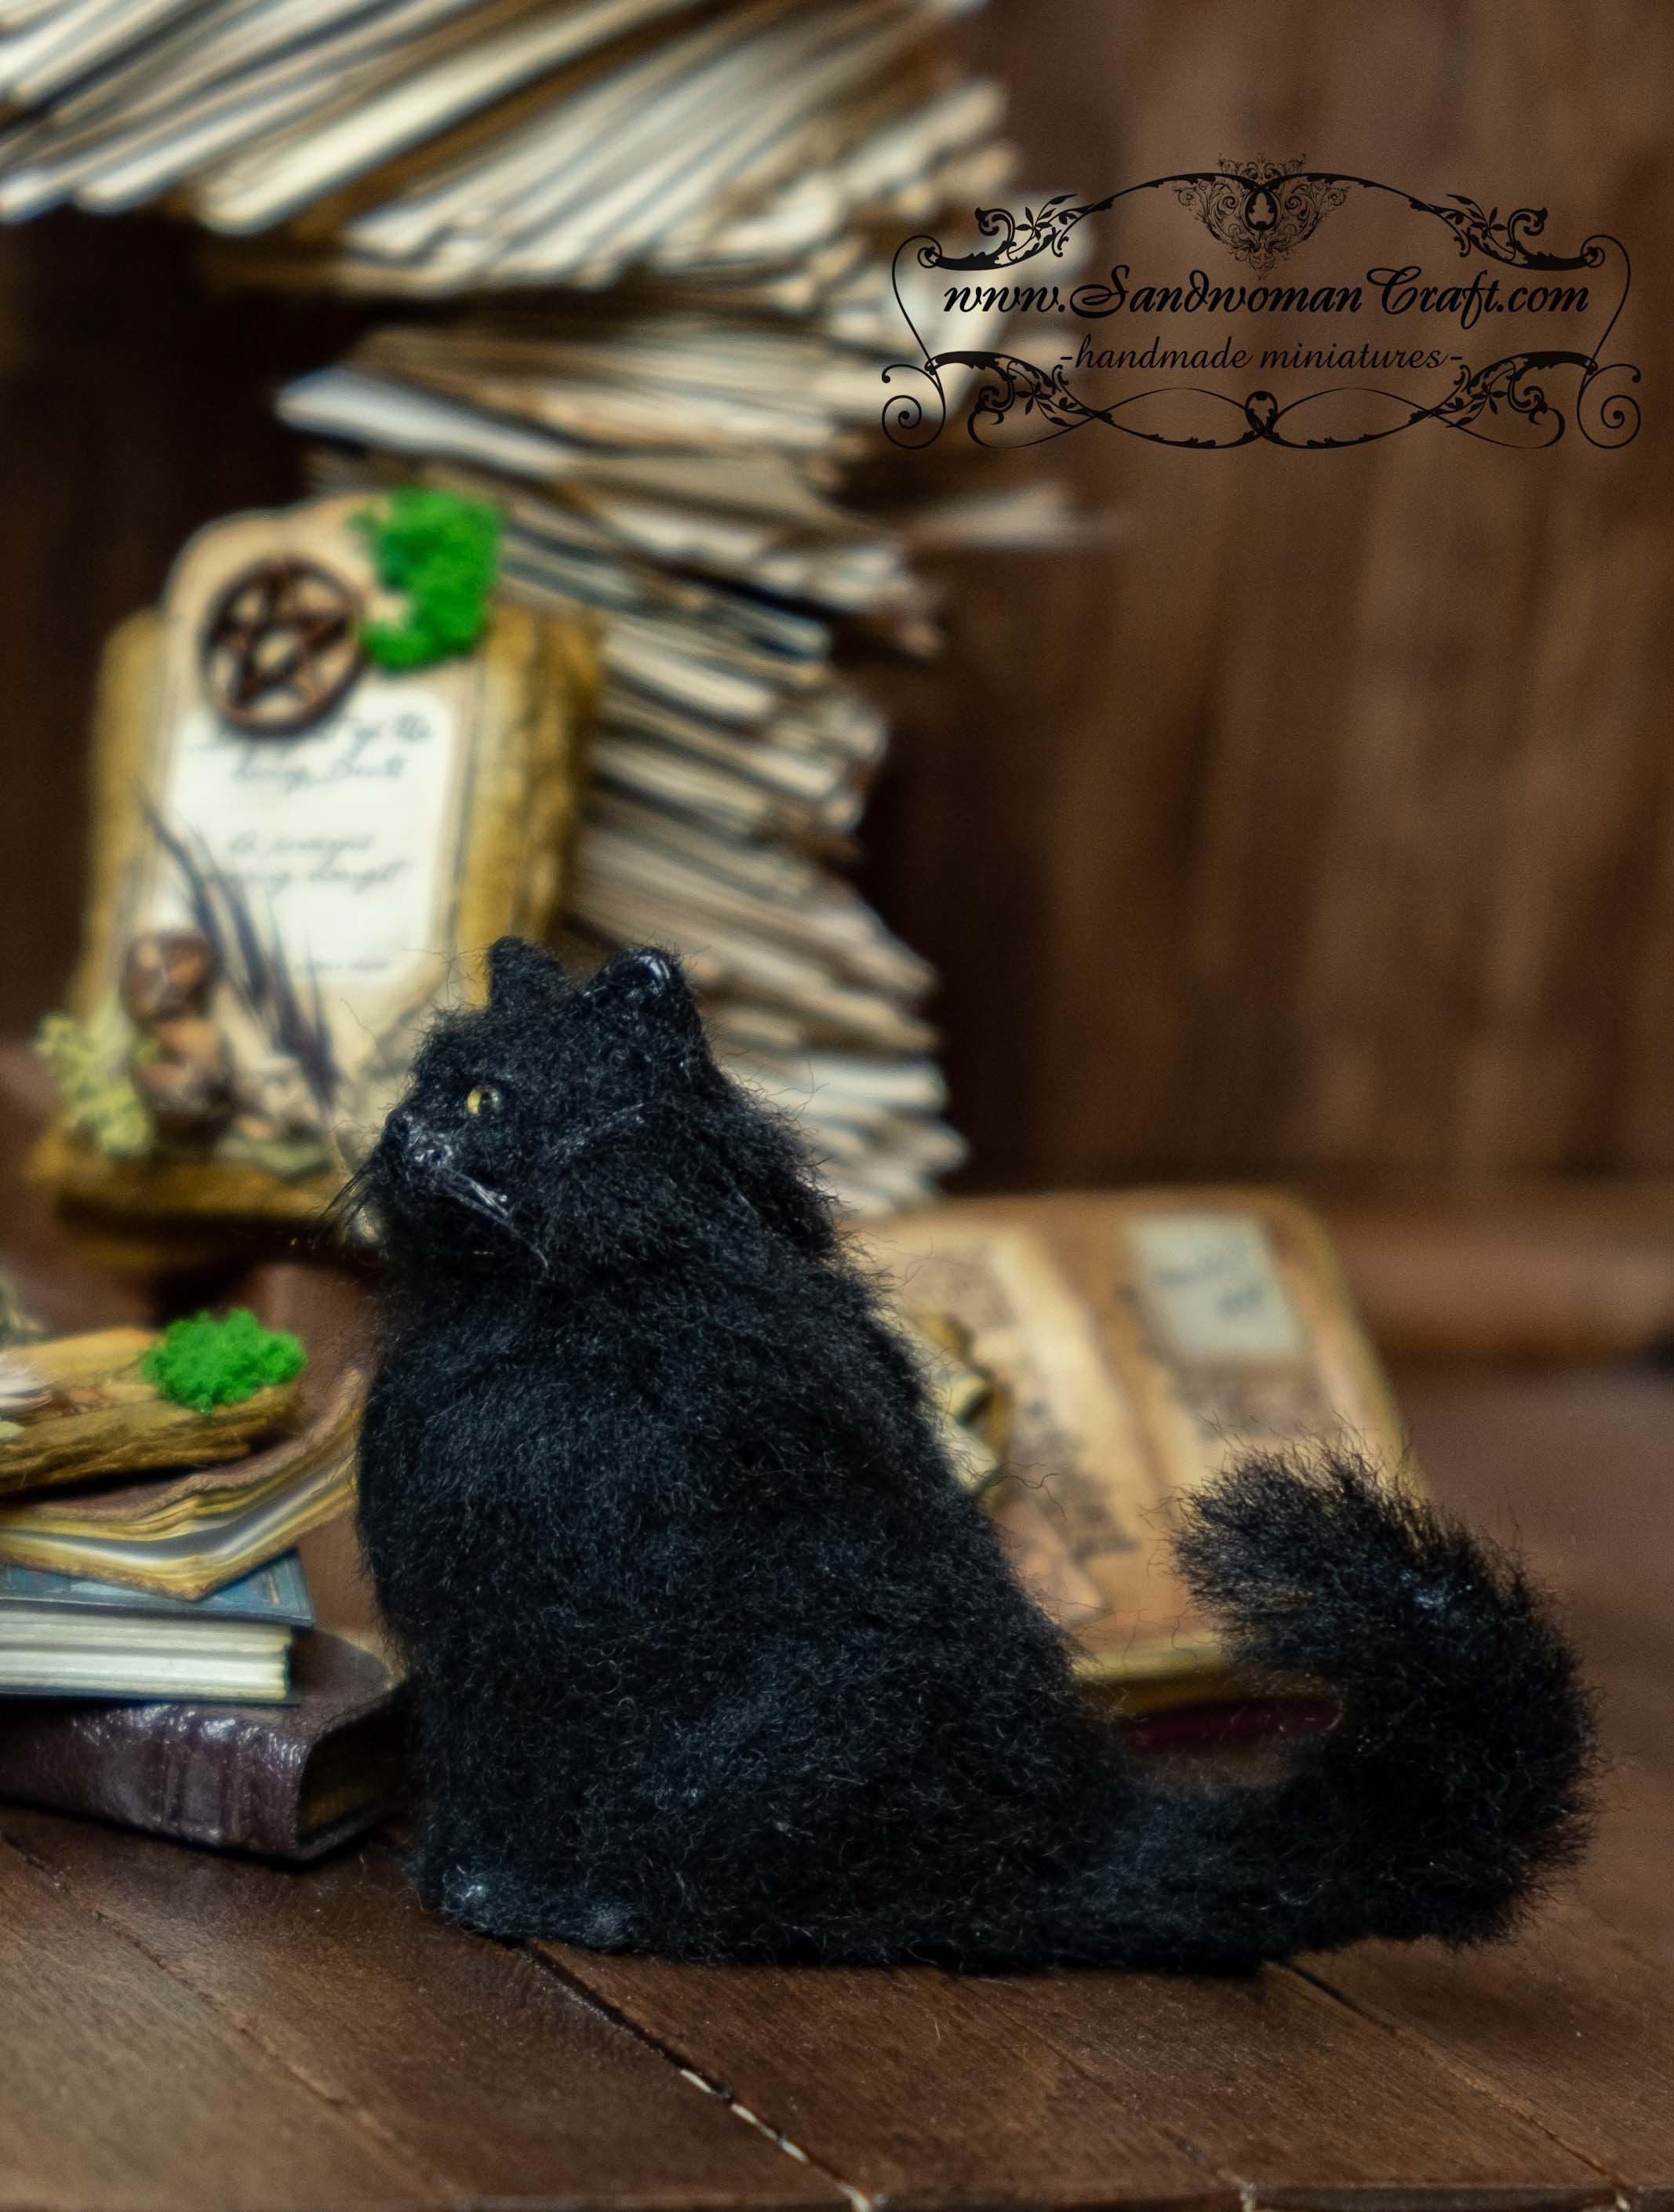 Dollhouse miniatures-Miniature cat in 1:12 scale-Black cat-Pet-Halloween-Witch-Cottage-Furry friend-Mohair-Alpaca fibres-Wool-Yarn-Animals #witchcottage Dollhouse miniatures-Miniature cat in 1:12 scale-Black cat-Pet-Halloween-Witch-Cottage-Furry friend-Mohair-Alpaca fibres-Wool-Yarn-Animals #witchcottage